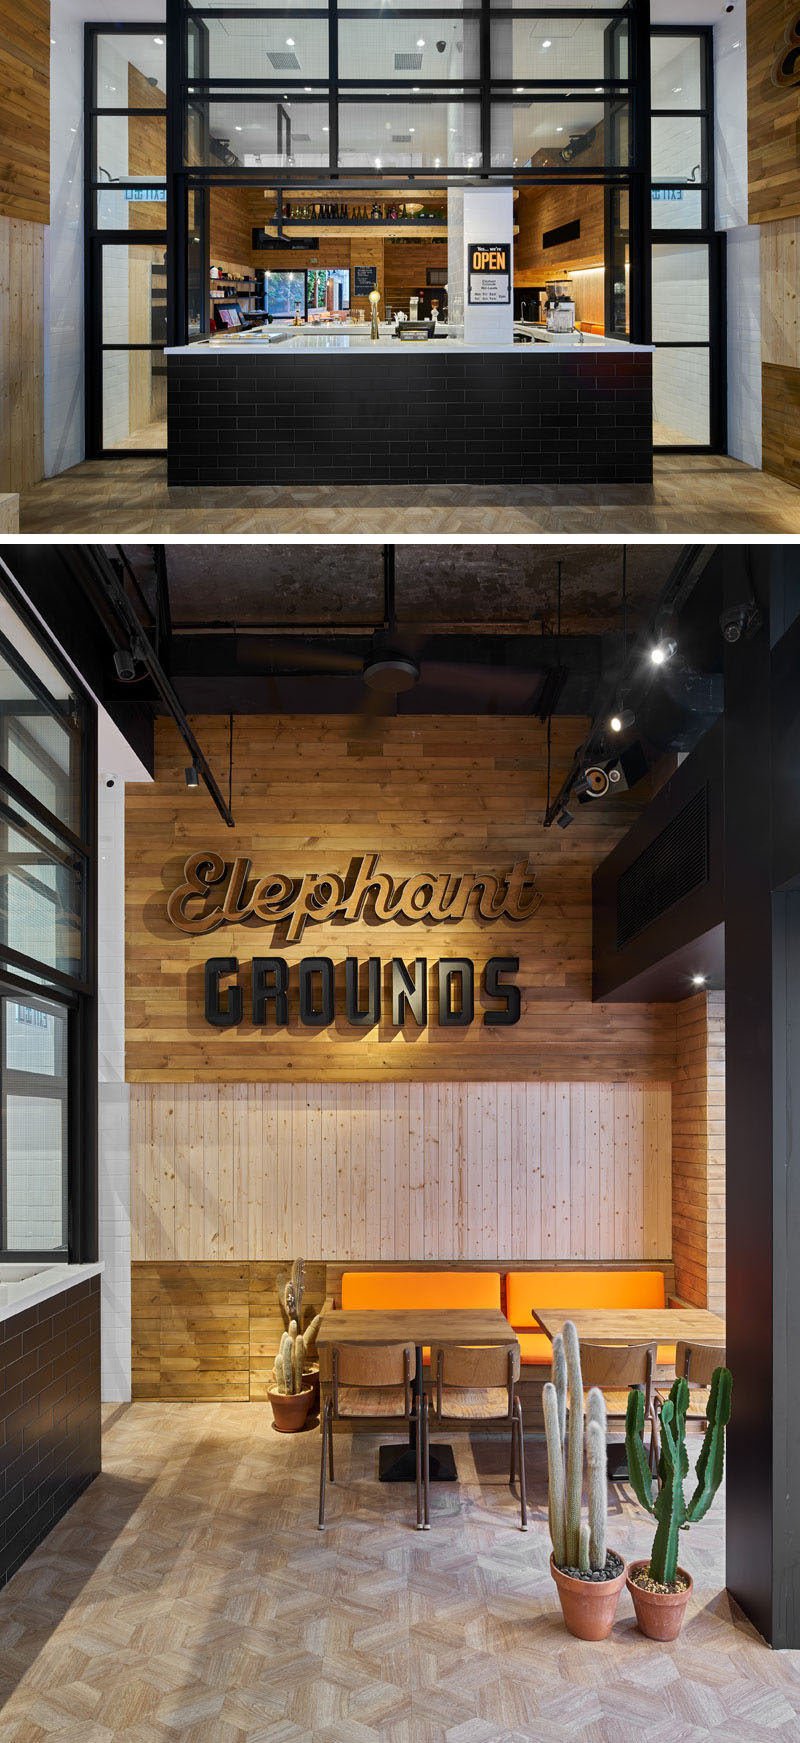 Elephant Grounds Have Opened Their Latest Coffee Shop In